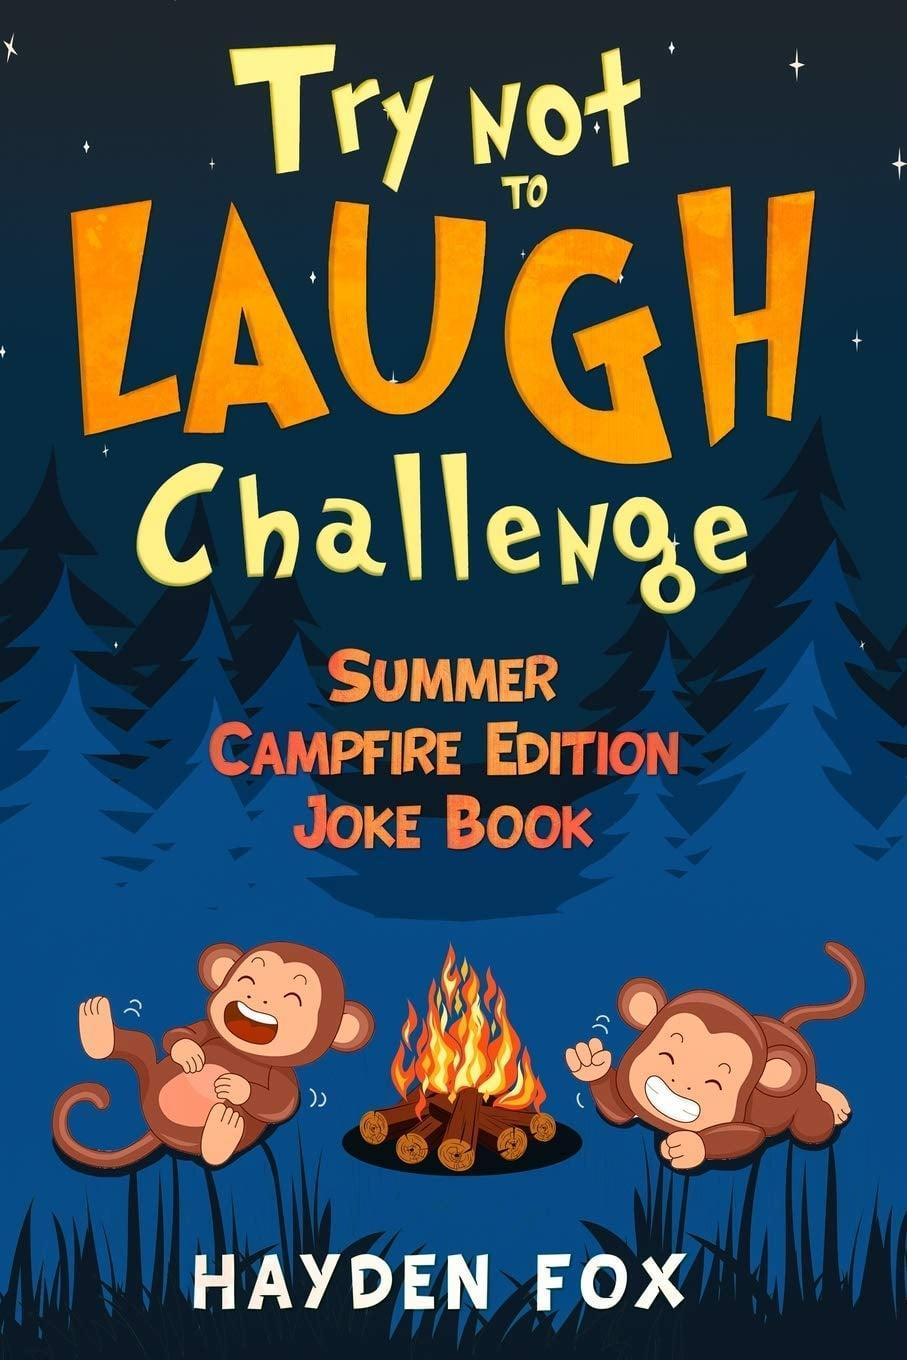 """<p>This <a href=""""https://www.popsugar.com/buy/bTry-Laugh-Challenge-Summer-Campfire-Edition-Joke-Bookb-575742?p_name=%3Cb%3ETry%20Not%20to%20Laugh%20Challenge%3A%20Summer%20Campfire%20Edition%20Joke%20Book%3C%2Fb%3E&retailer=amazon.com&pid=575742&evar1=moms%3Aus&evar9=47479532&evar98=https%3A%2F%2Fwww.popsugar.com%2Fphoto-gallery%2F47479532%2Fimage%2F47479555%2FCampfire-Joke-Book&list1=camping%2Ckid%20activities%2Ckid%20shopping%2Cparent%20shopping%2Cstaying%20home&prop13=api&pdata=1"""" class=""""link rapid-noclick-resp"""" rel=""""nofollow noopener"""" target=""""_blank"""" data-ylk=""""slk:Try Not to Laugh Challenge: Summer Campfire Edition Joke Book""""><b>Try Not to Laugh Challenge: Summer Campfire Edition Joke Book</b></a> ($9) from the Try Not to Laugh Challenge series of books is packed with kid-friendly jokes, riddles, and puns that'll have the whole family laughing in their sleeping bags. If your kids are more into scares than laughs, give this collection of <a href=""""https://www.popsugar.com/buy?url=https%3A%2F%2Fwww.amazon.com%2Fdp%2F1070876372%2Fref%3Dcm_sw_r_tw_dp_U_x_I-xWEbAS5EGD5&p_name=family-friendly%20campfire%20stories&retailer=amazon.com&evar1=moms%3Aus&evar9=47479532&evar98=https%3A%2F%2Fwww.popsugar.com%2Fphoto-gallery%2F47479532%2Fimage%2F47479555%2FCampfire-Joke-Book&list1=camping%2Ckid%20activities%2Ckid%20shopping%2Cparent%20shopping%2Cstaying%20home&prop13=api&pdata=1"""" class=""""link rapid-noclick-resp"""" rel=""""nofollow noopener"""" target=""""_blank"""" data-ylk=""""slk:family-friendly campfire stories"""">family-friendly campfire stories</a> a try.</p>"""